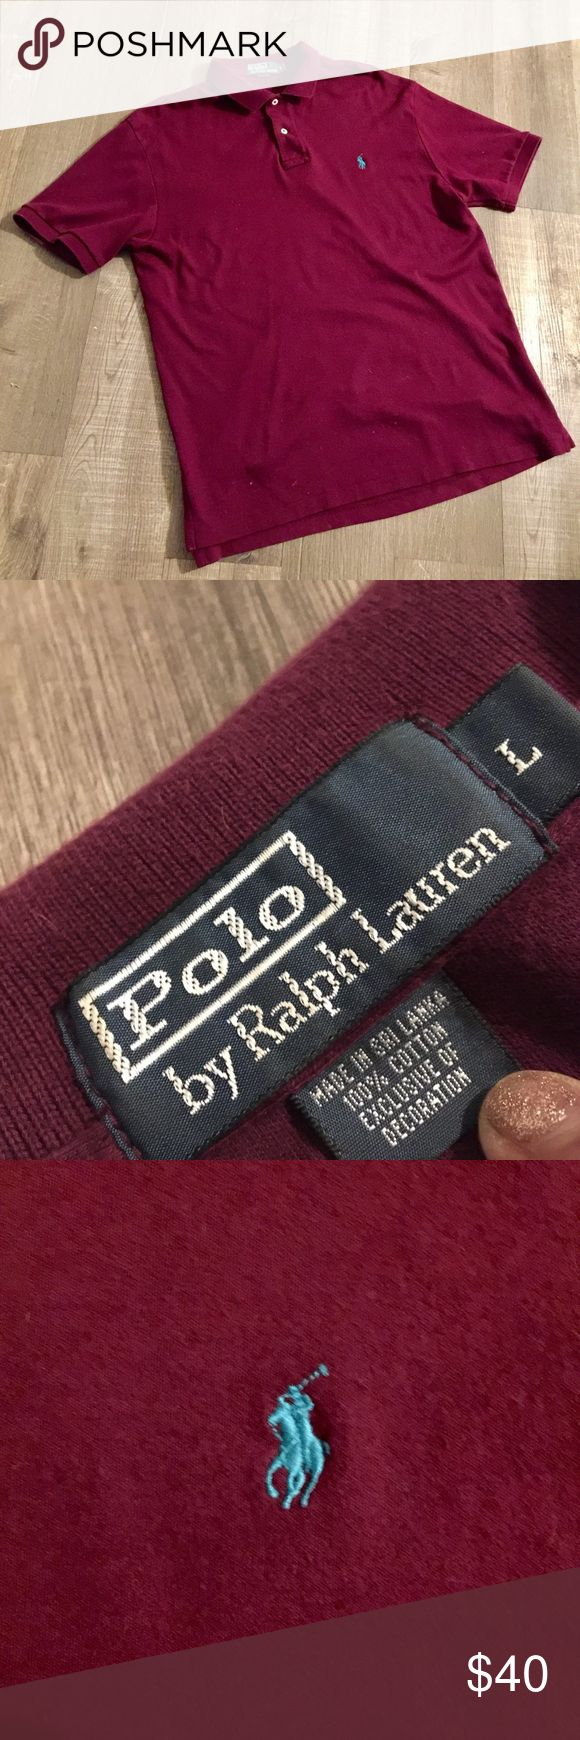 Burgundy Men's Polo Shirt Burgundy Men's Polo shirt, still in really good condition! Polo by Ralph Lauren Shirts Polos